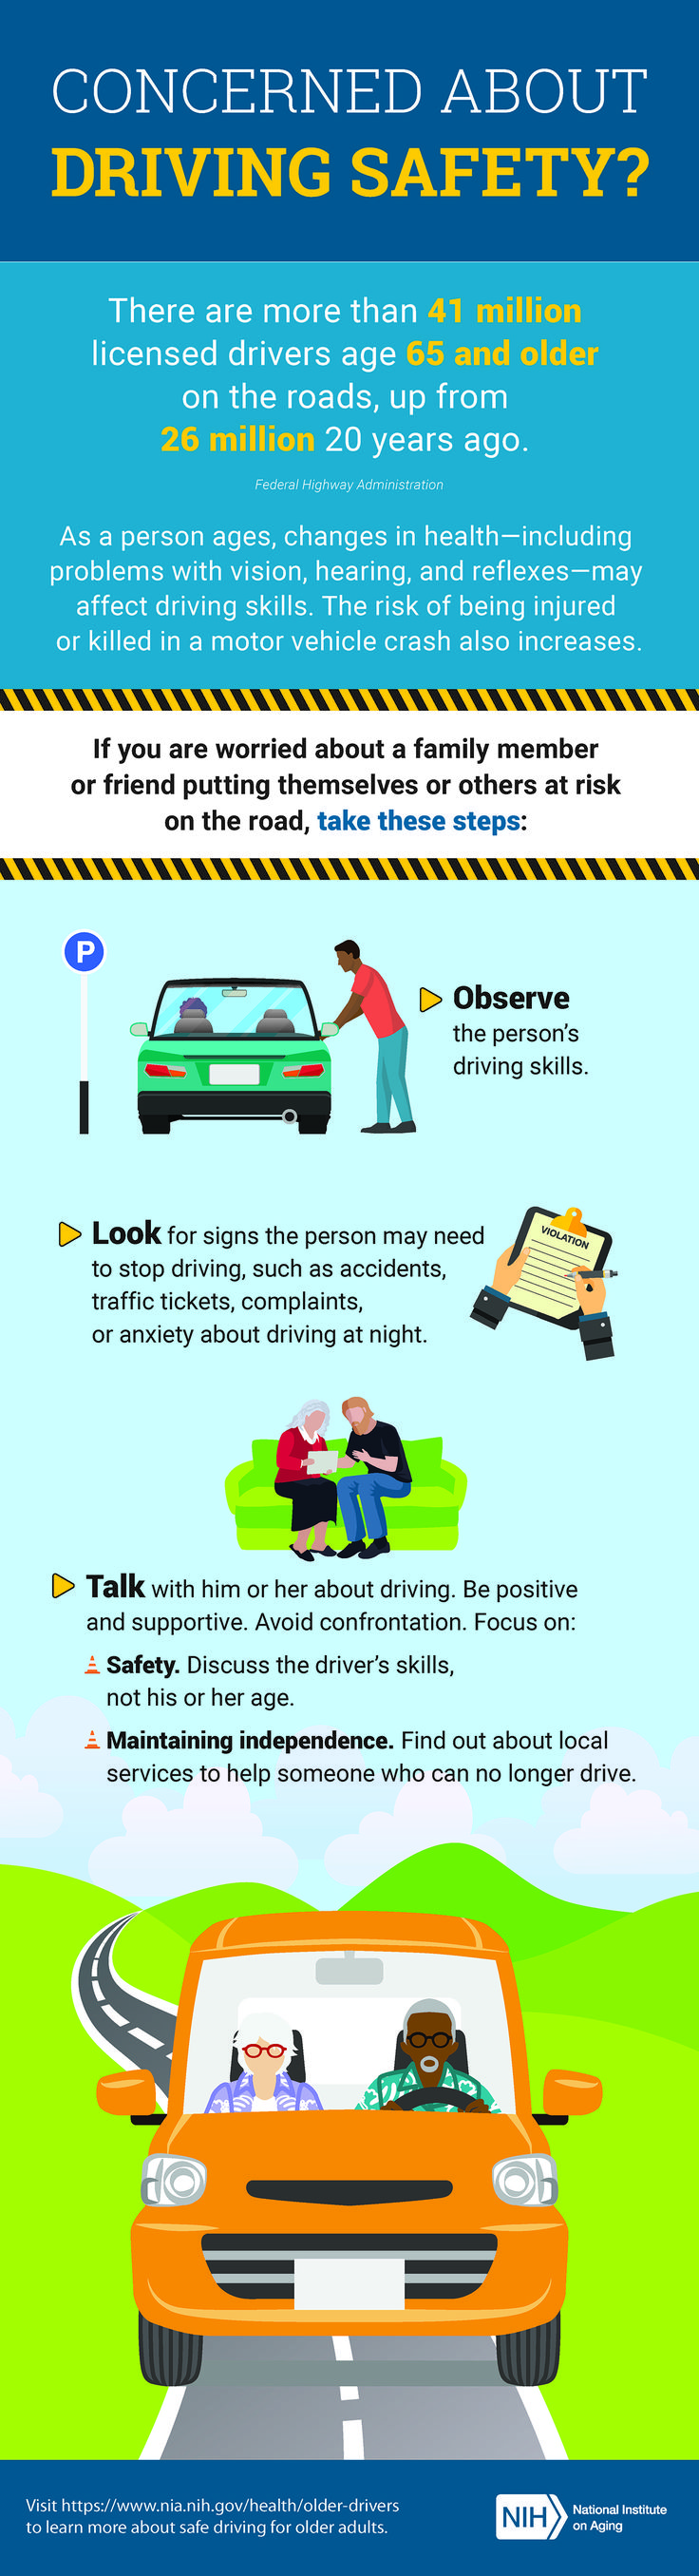 If you have concerns about a family member or friend, learn how to help them stay safe behind the wheel.